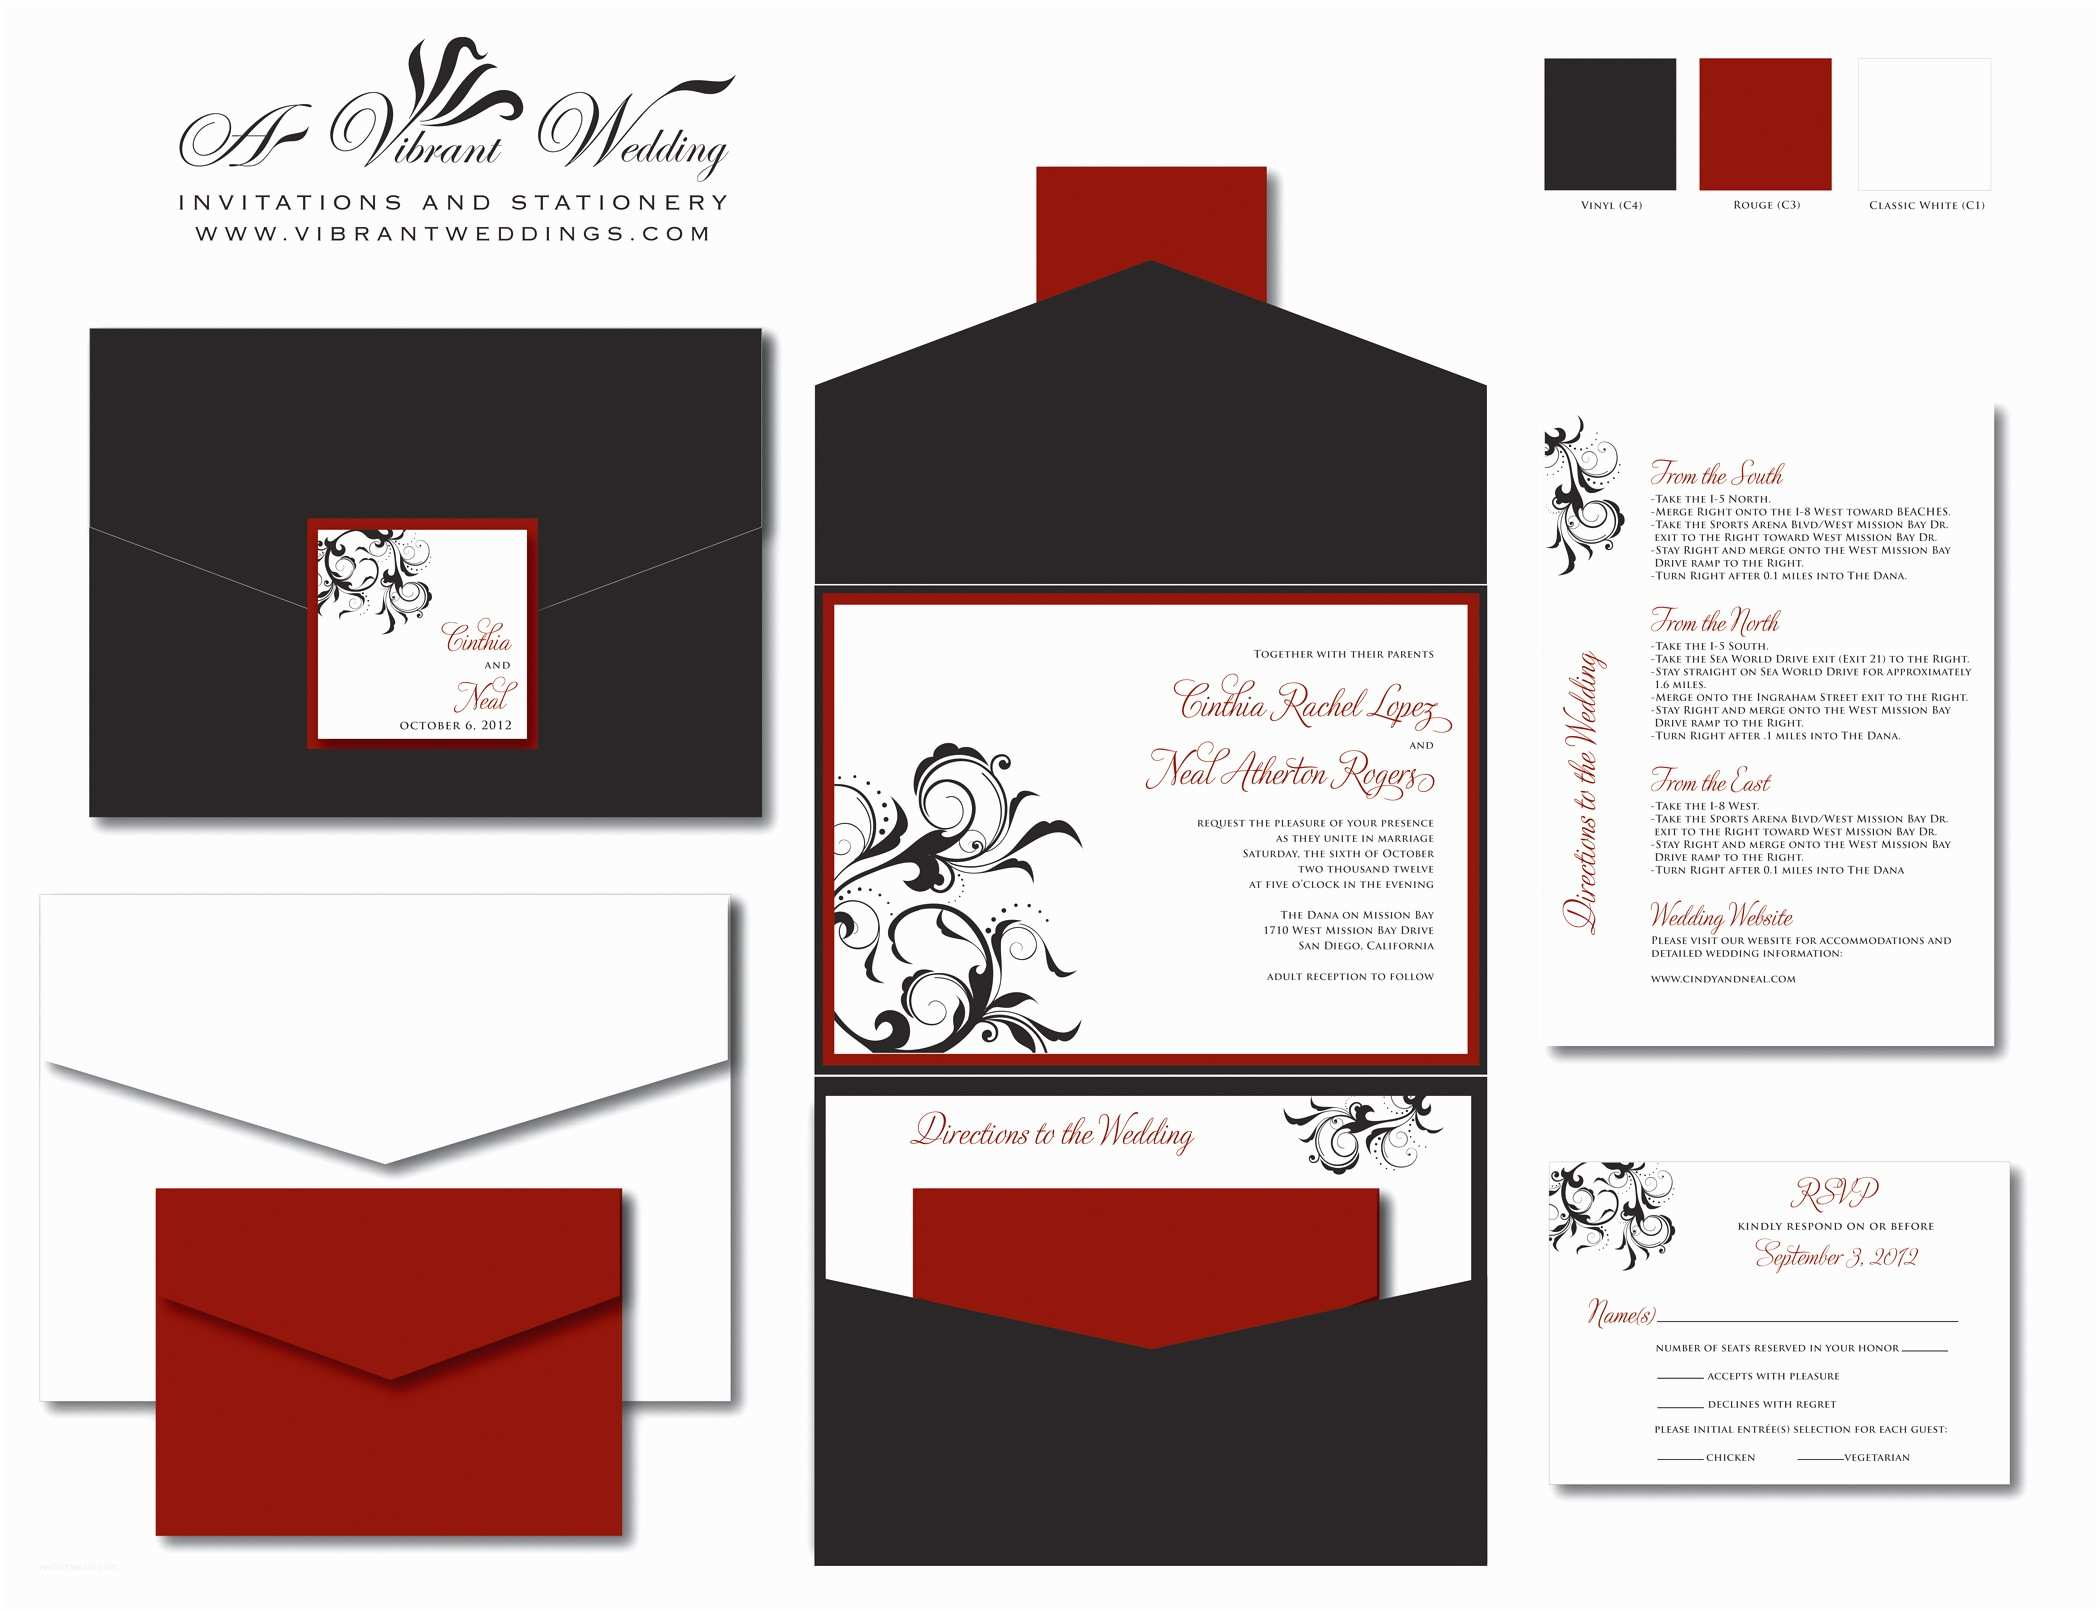 Red Black and White Wedding Invitations Red Wedding Invitation – A Vibrant Wedding